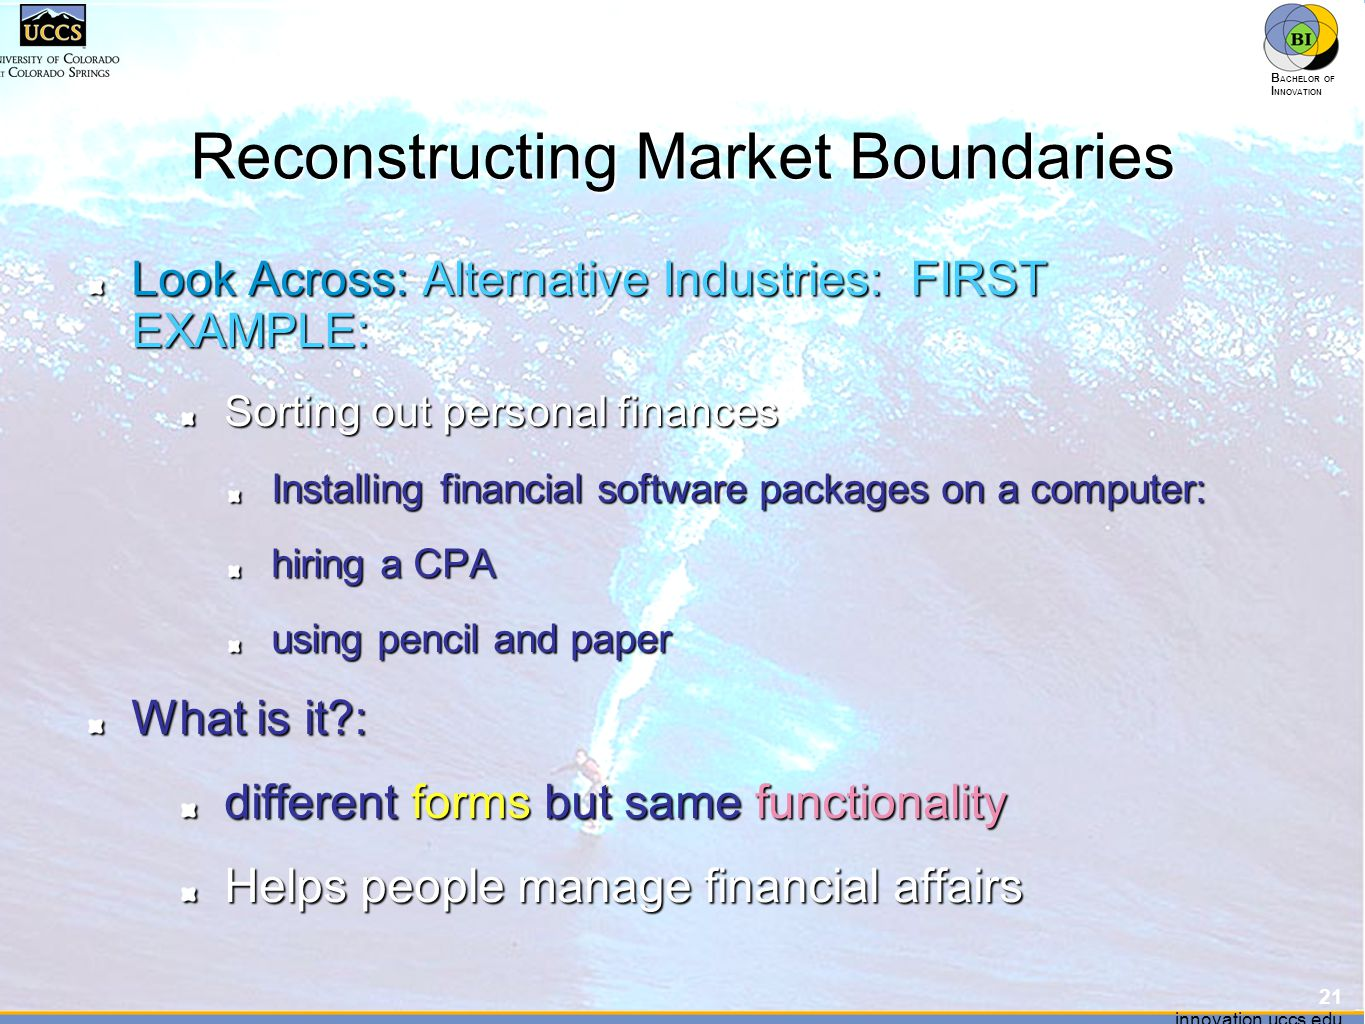 innovation.uccs.edu B ACHELOR OF I NNOVATION ™ innovation.uccs.edu B ACHELOR OF I NNOVATION ™ Reconstructing Market Boundaries Look Across: Alternative Industries: FIRST EXAMPLE: Sorting out personal finances Installing financial software packages on a computer: hiring a CPA using pencil and paper What is it : different forms but same functionality Helps people manage financial affairs 21